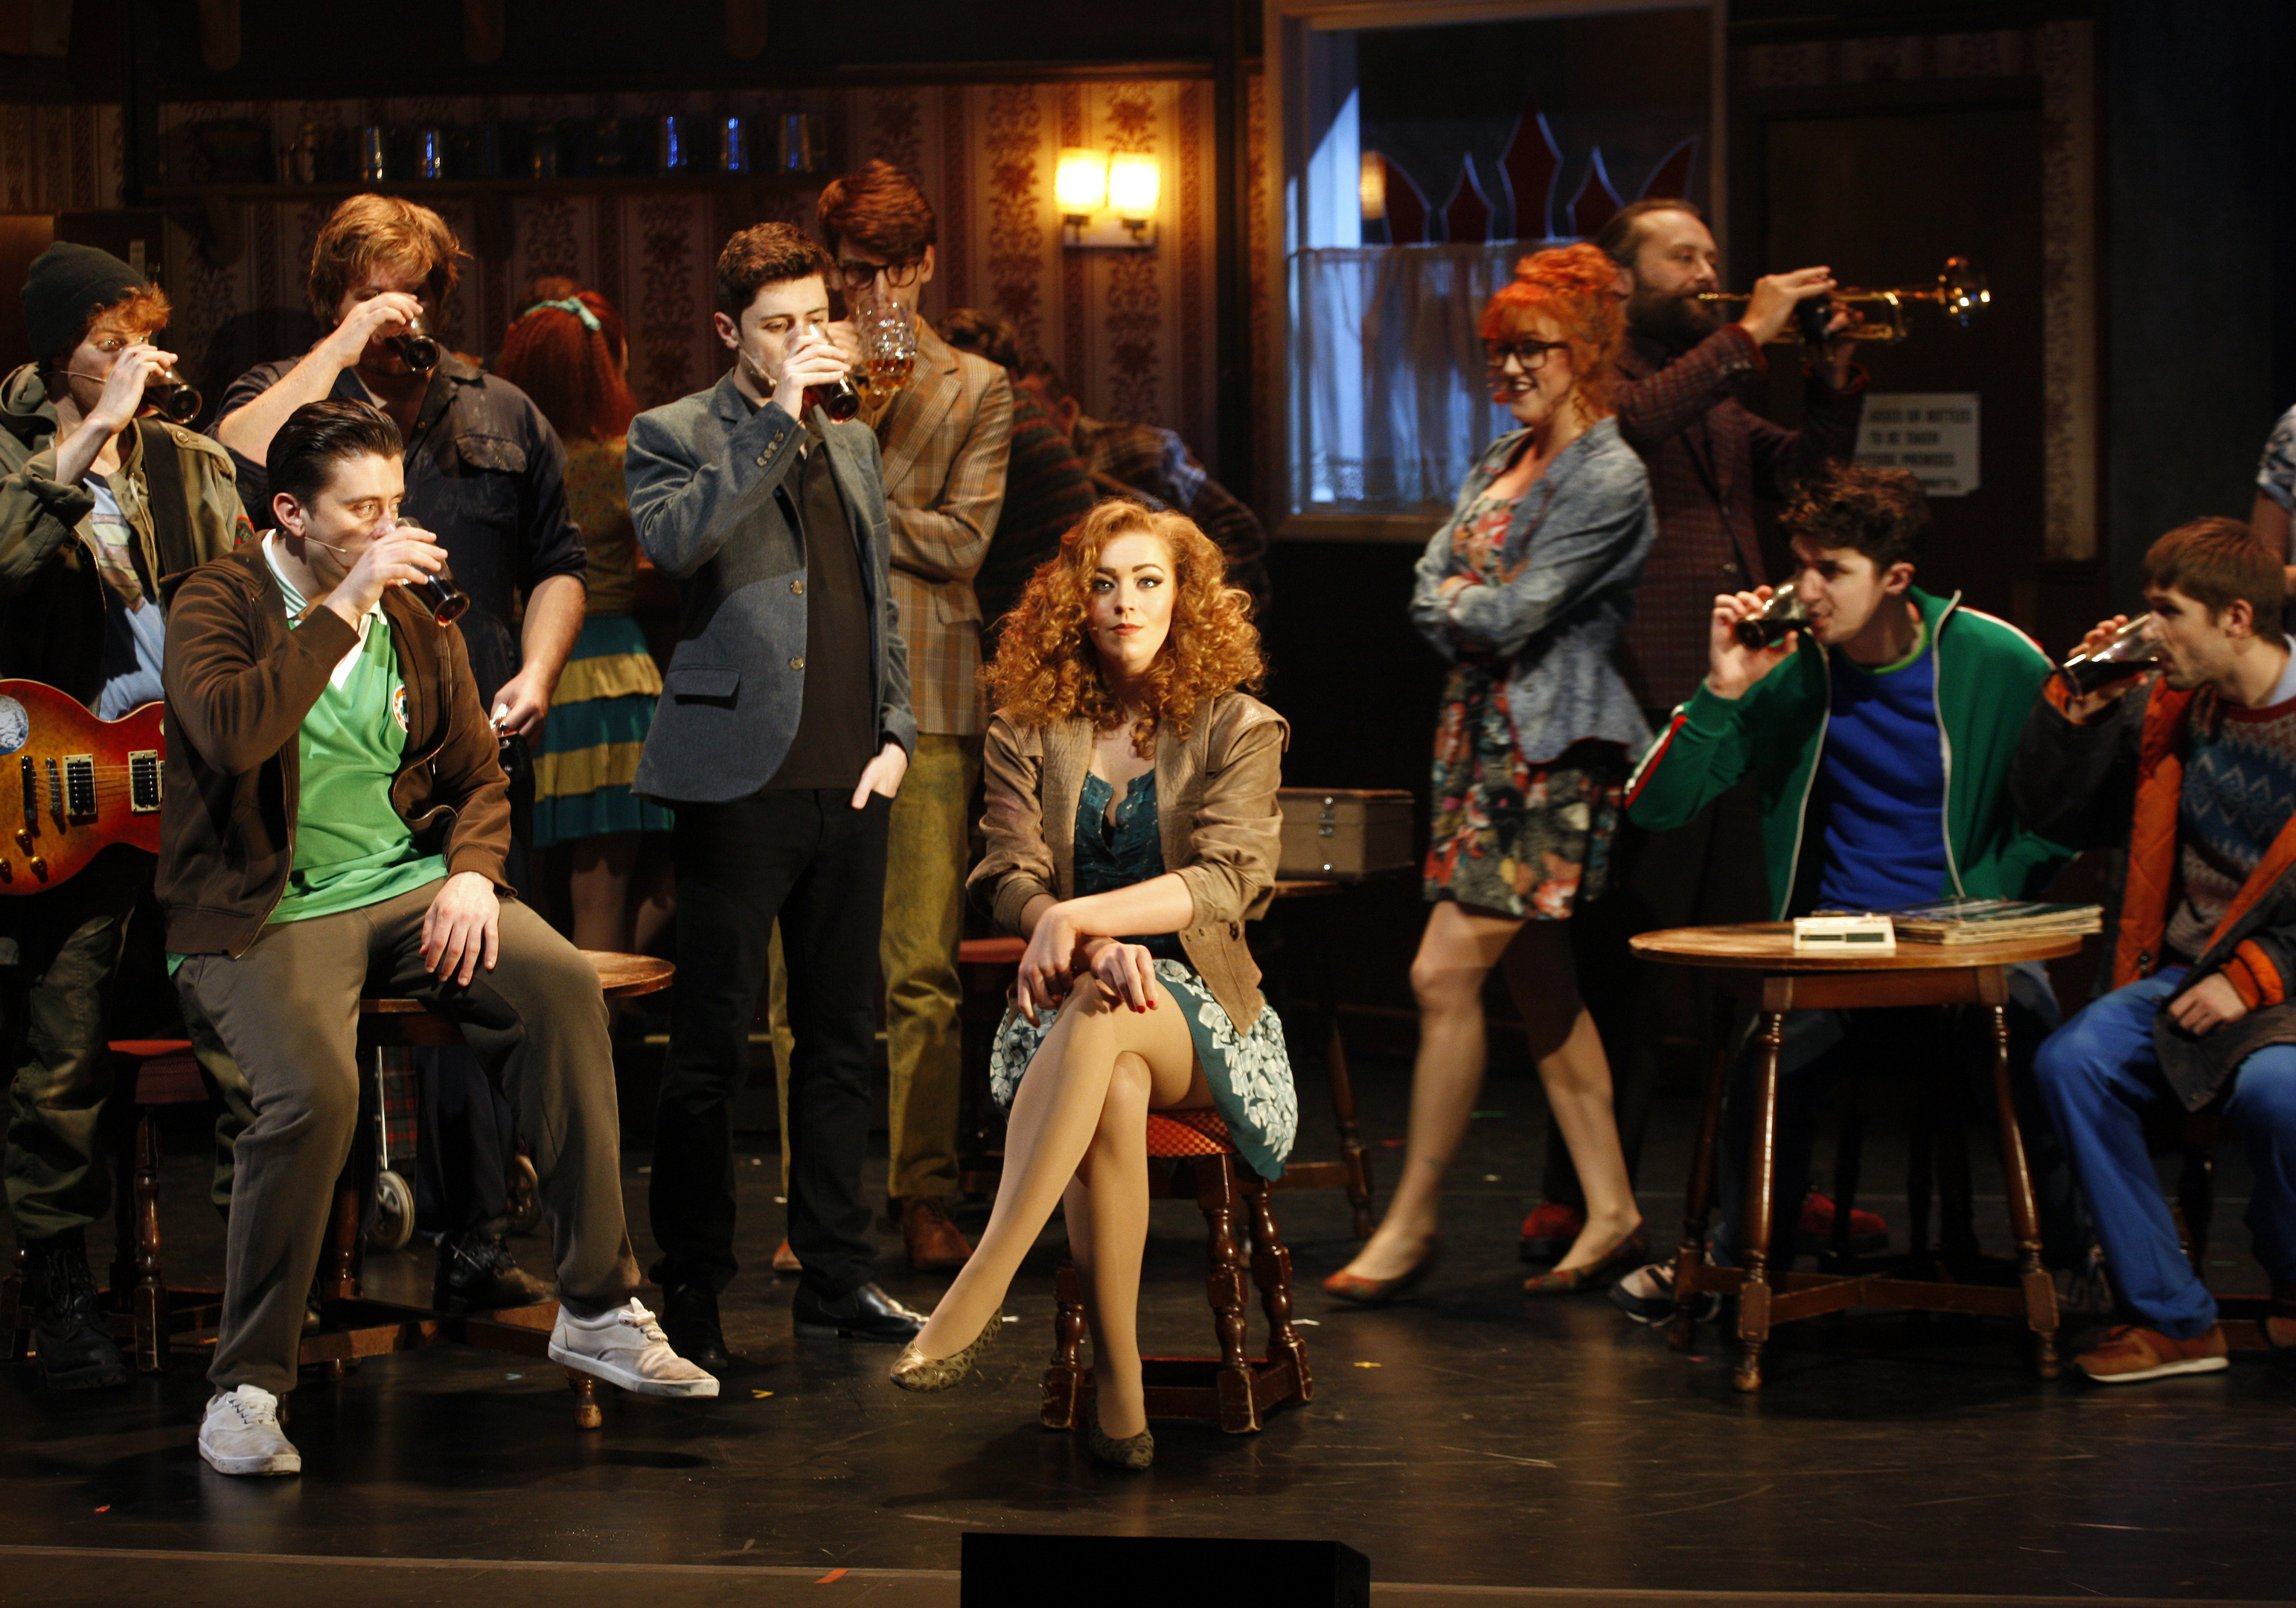 2. The Commitments, photo credit Johan Persson